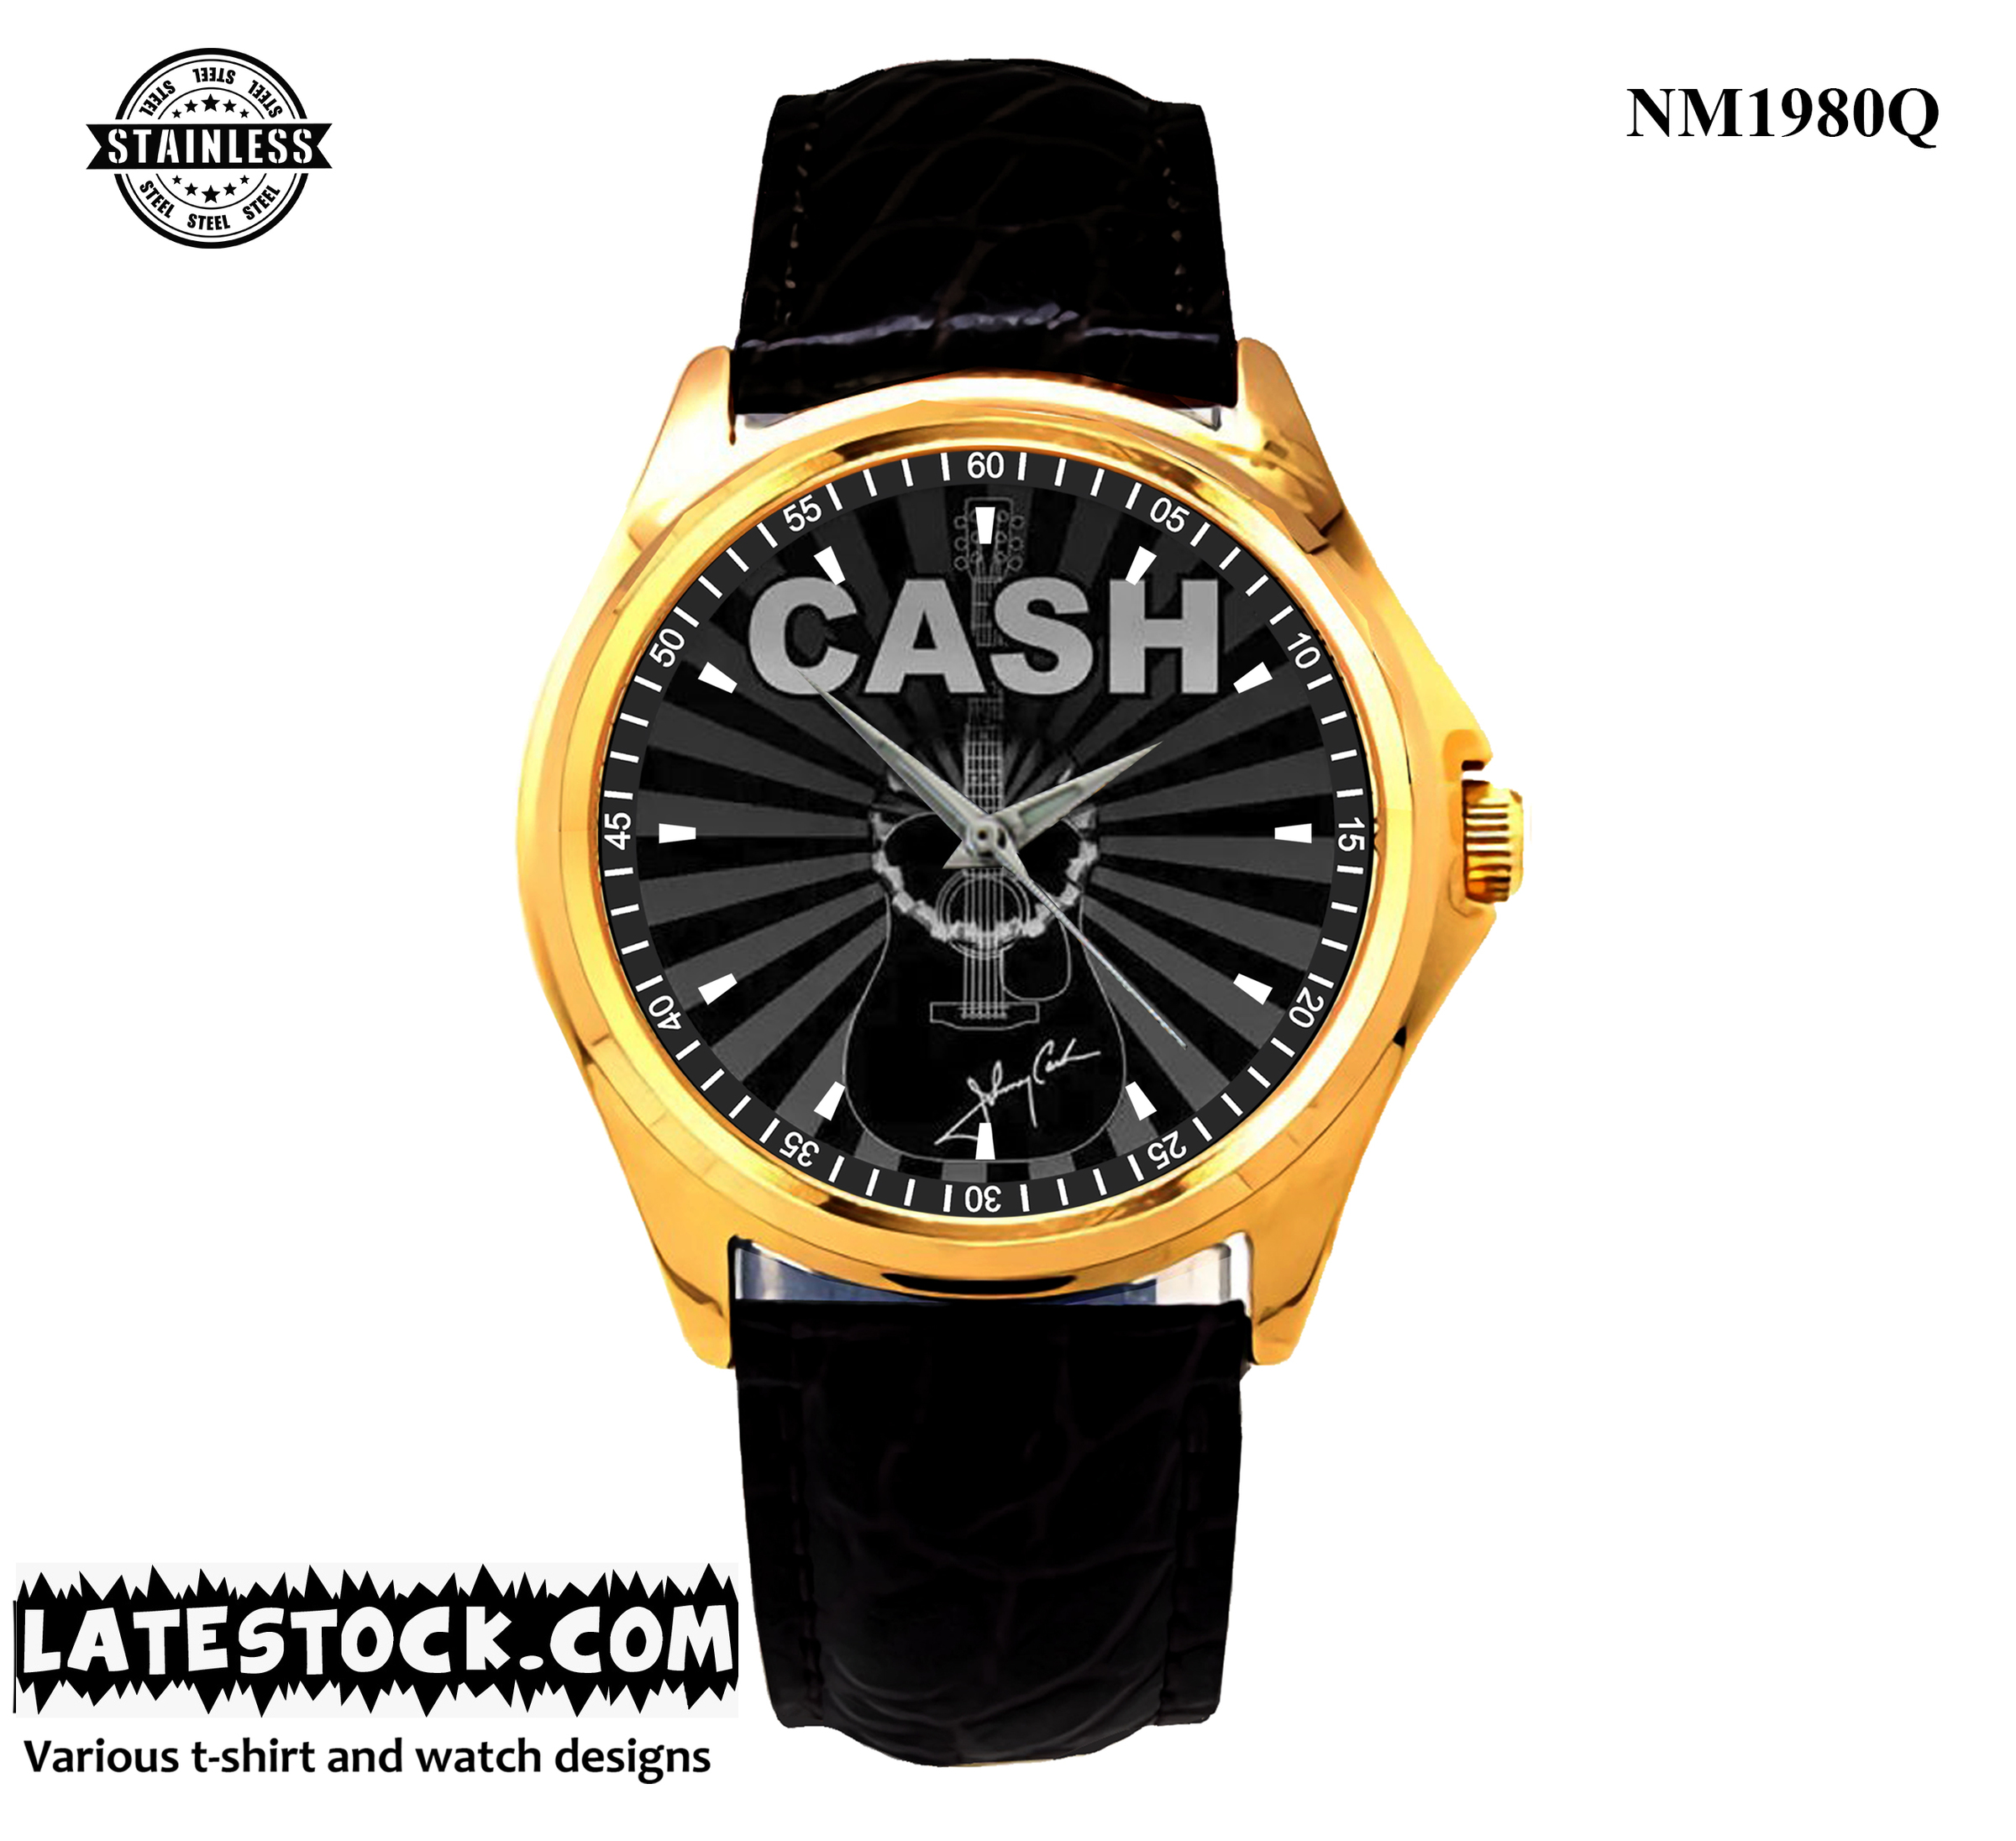 4.1 new design Abel Johnny Cash Reel sport leather watch gold- Limited Edition.jpg